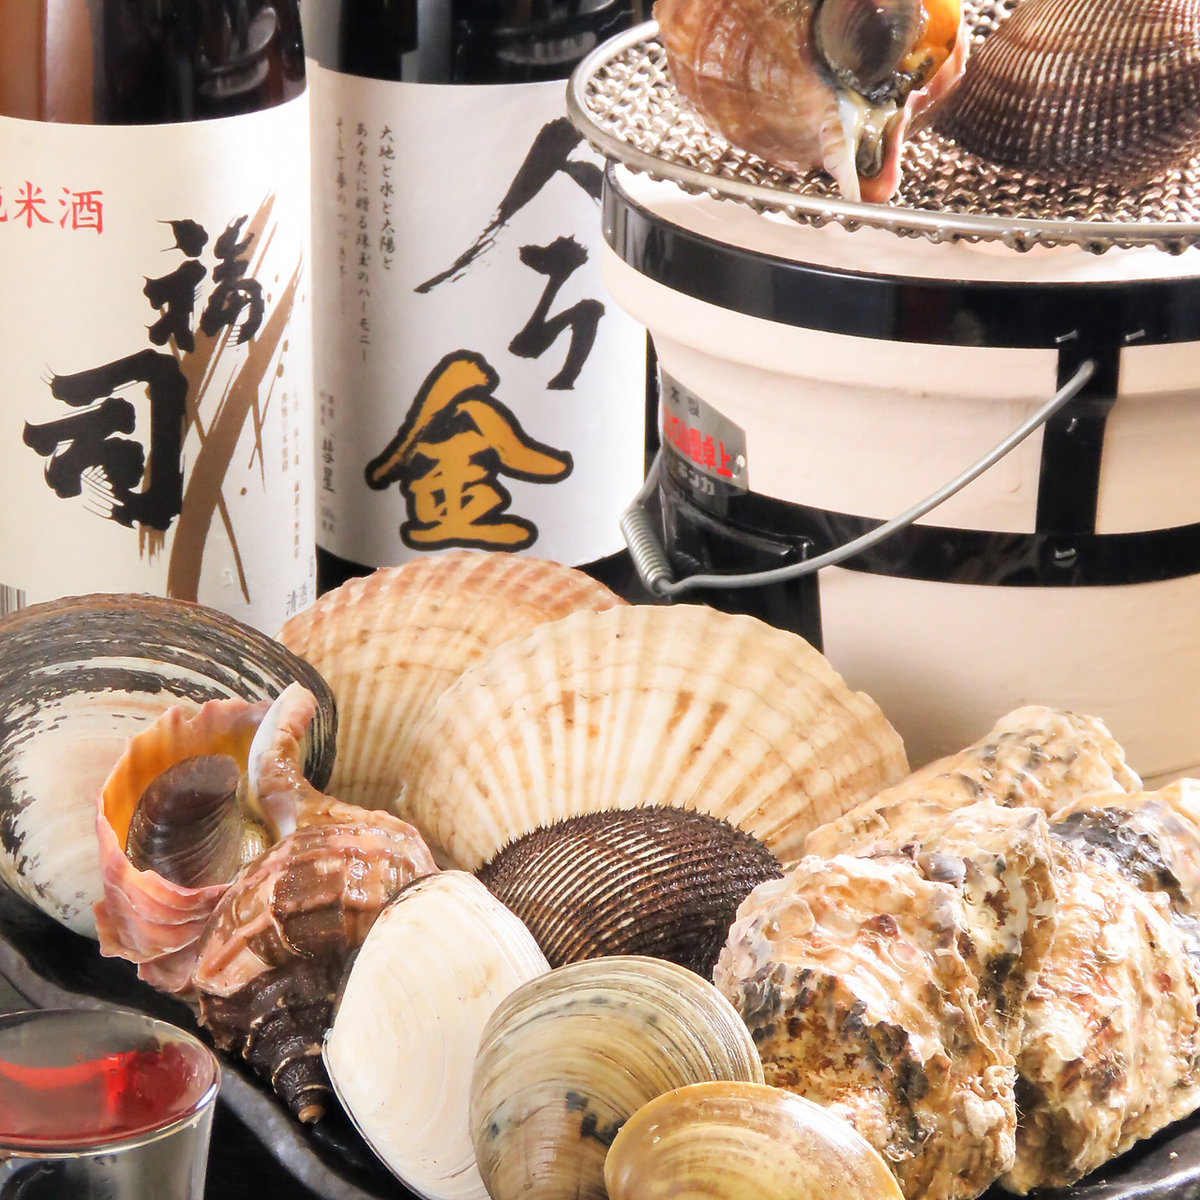 Fortunately enjoying the fresh seafoods offered on that day in Taichi!